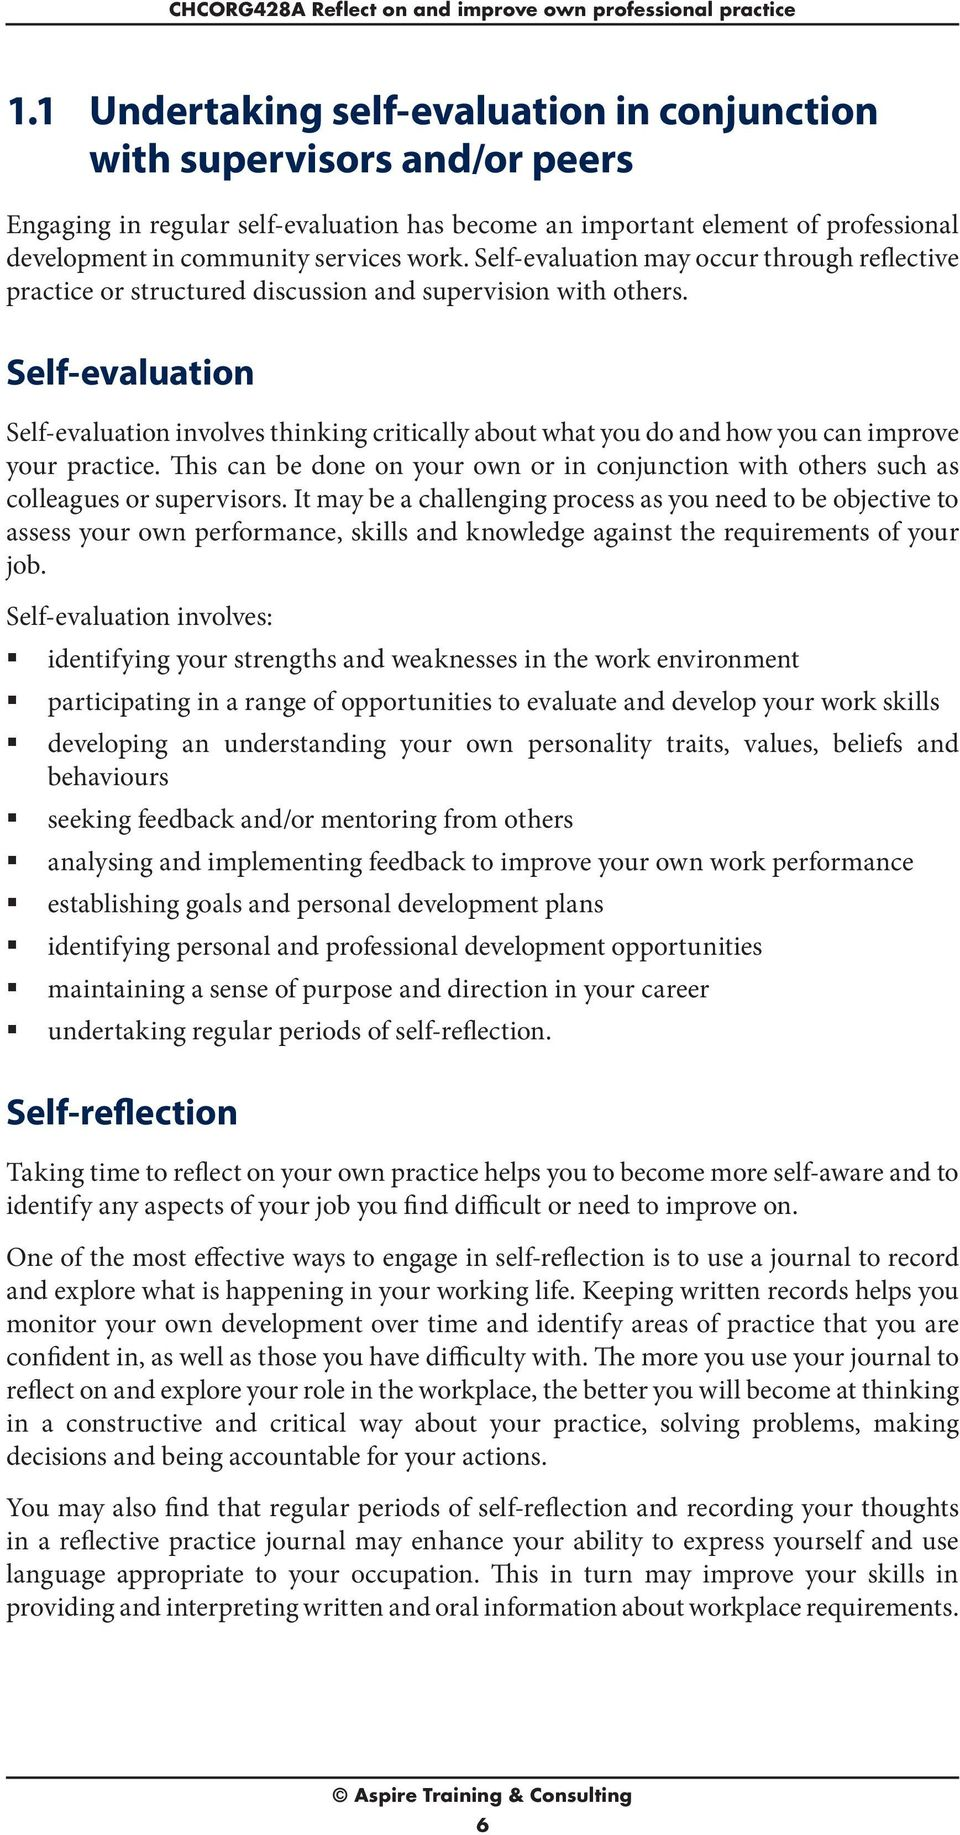 Self-evaluation may occur through reflective practice or structured discussion and supervision with others.